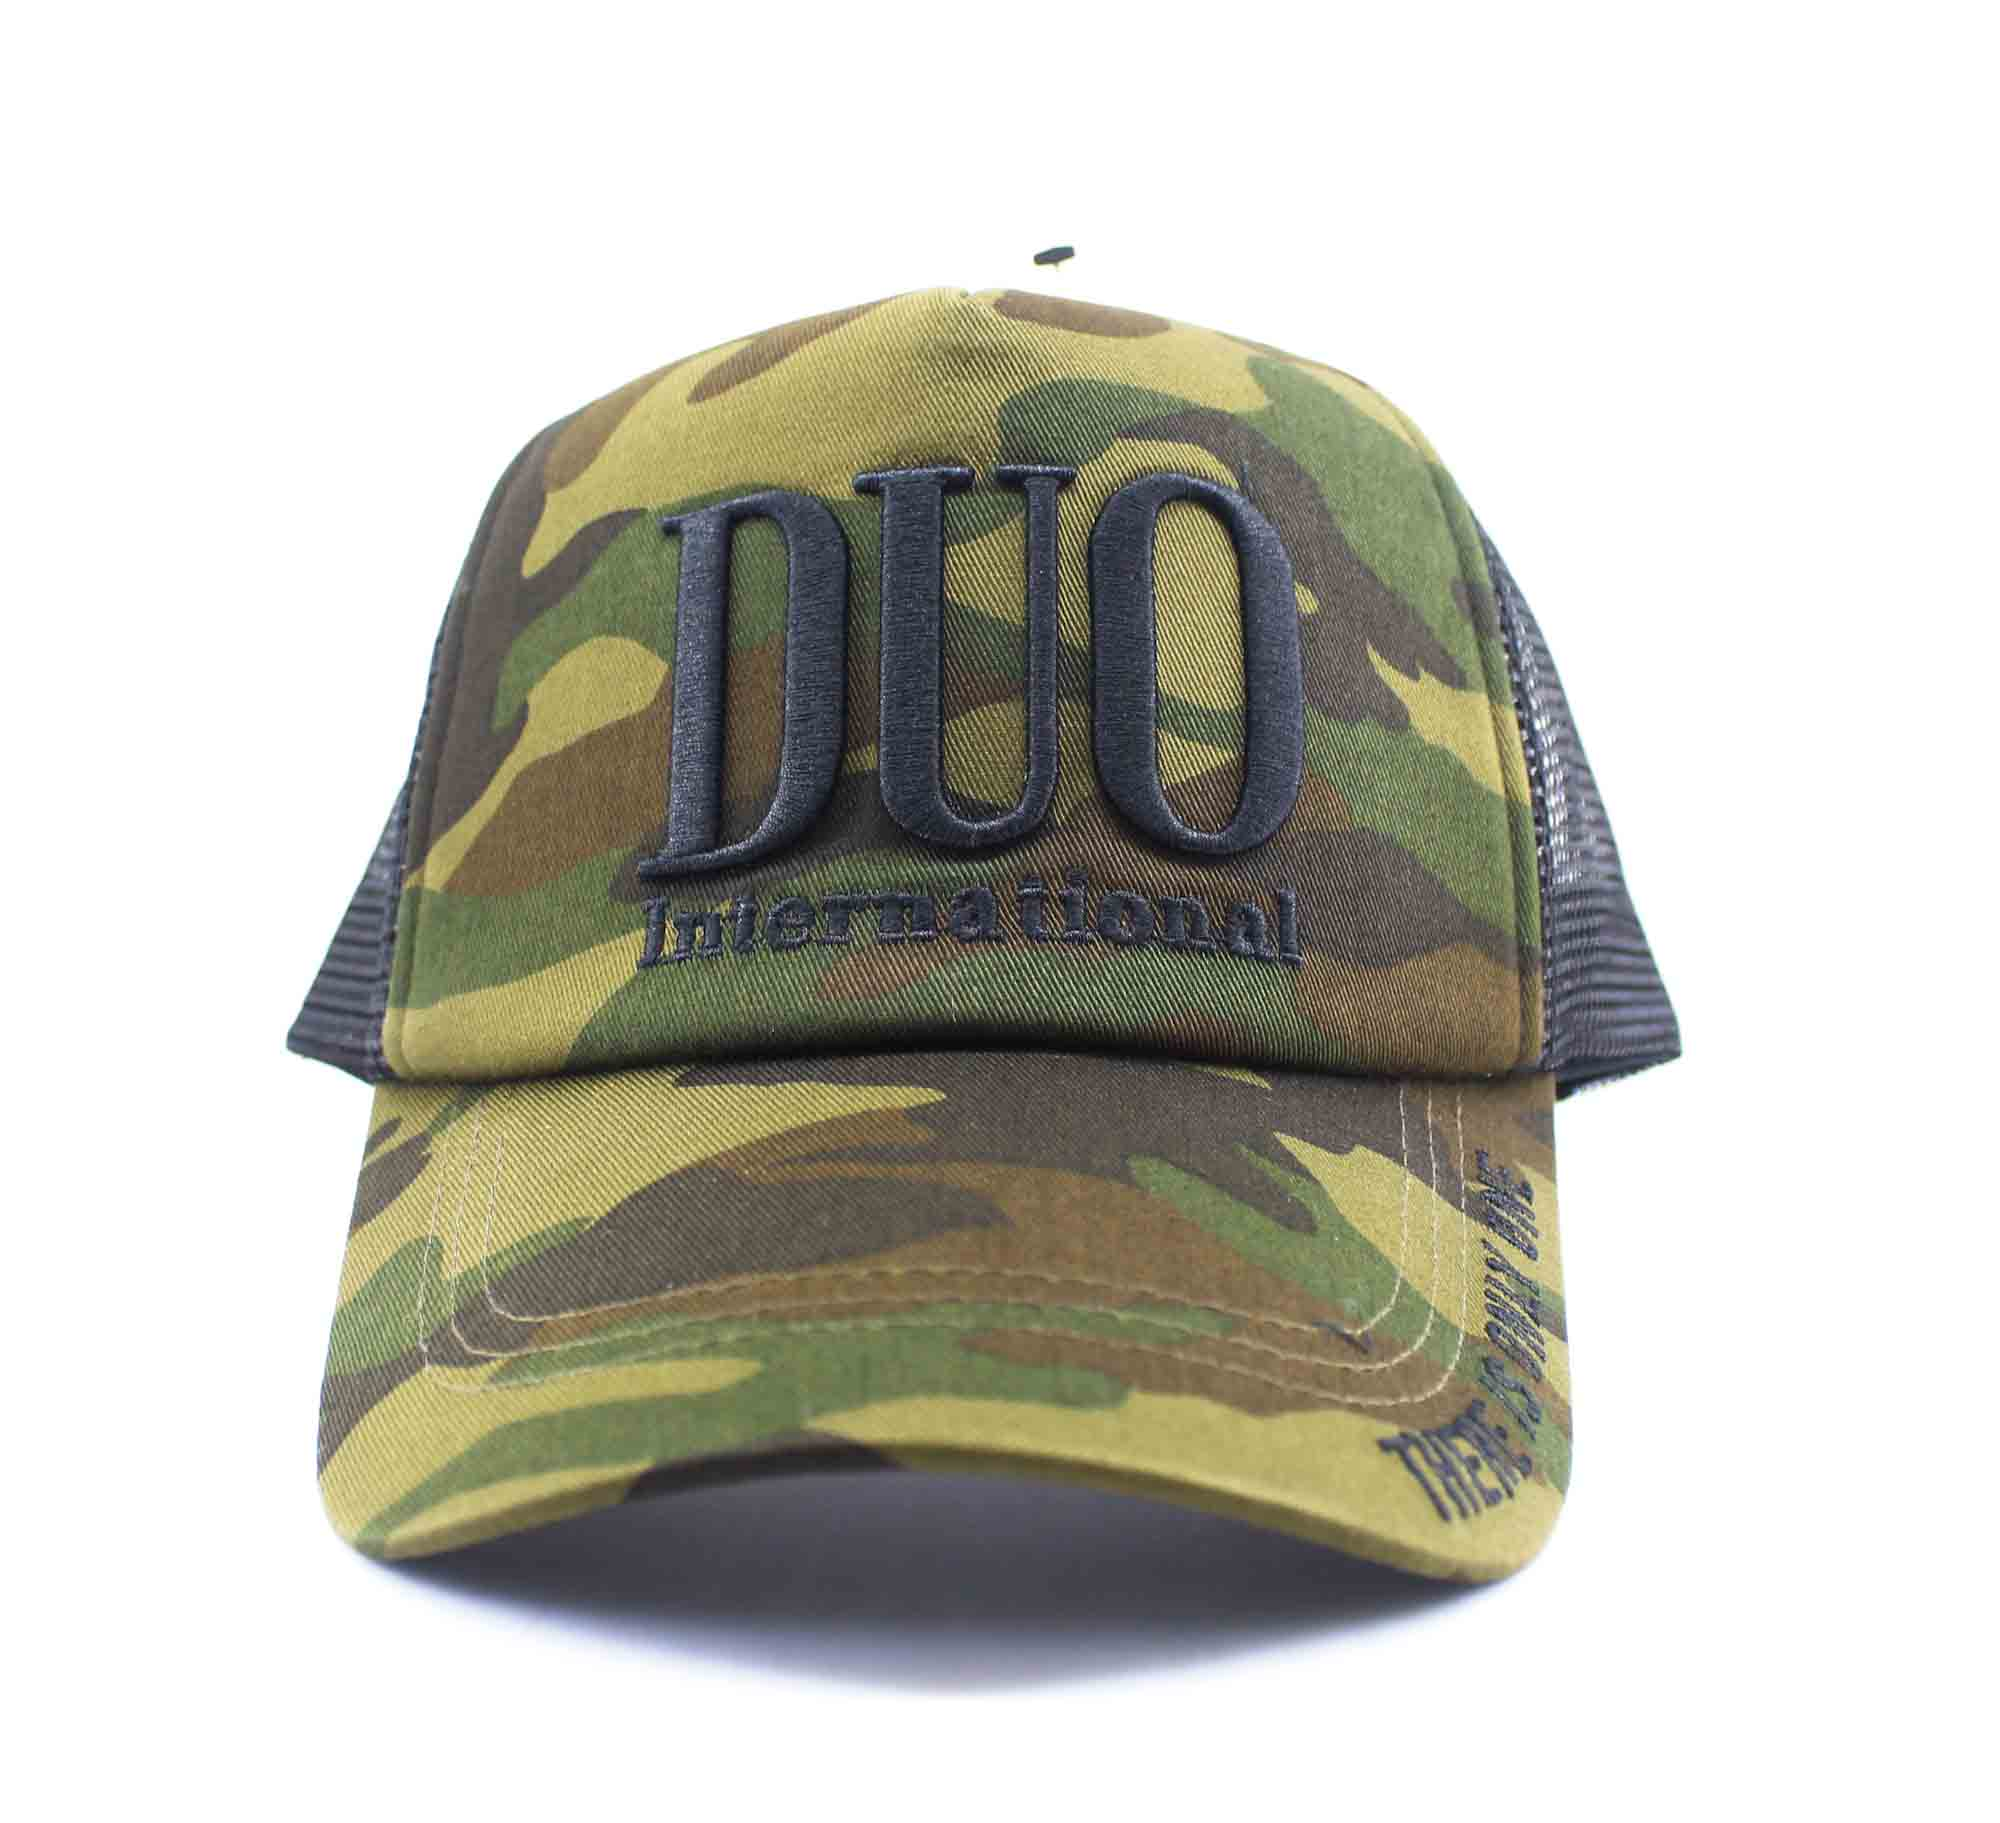 Duo Cap Trucker Cap Original Japan Free Size Green Camo (8029)